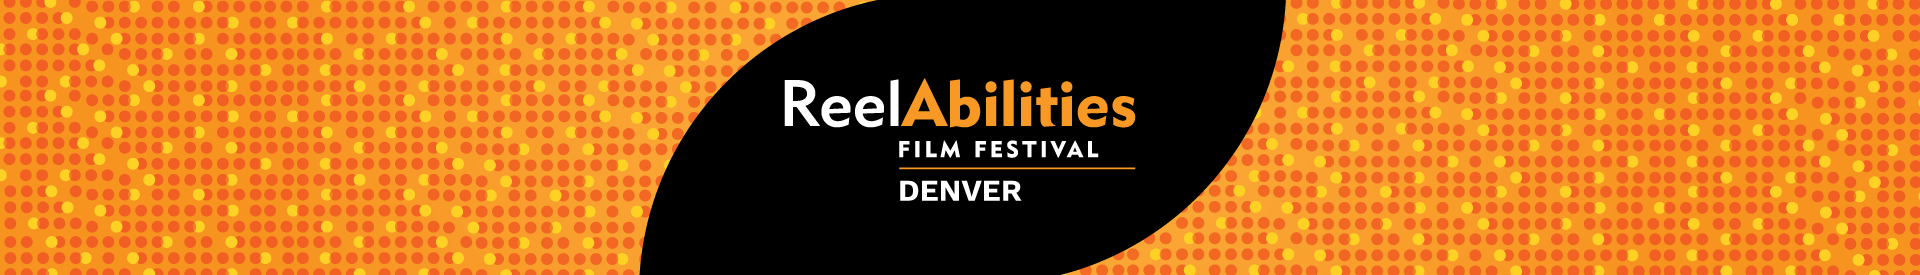 ReelAbilities: Denver Film Festival